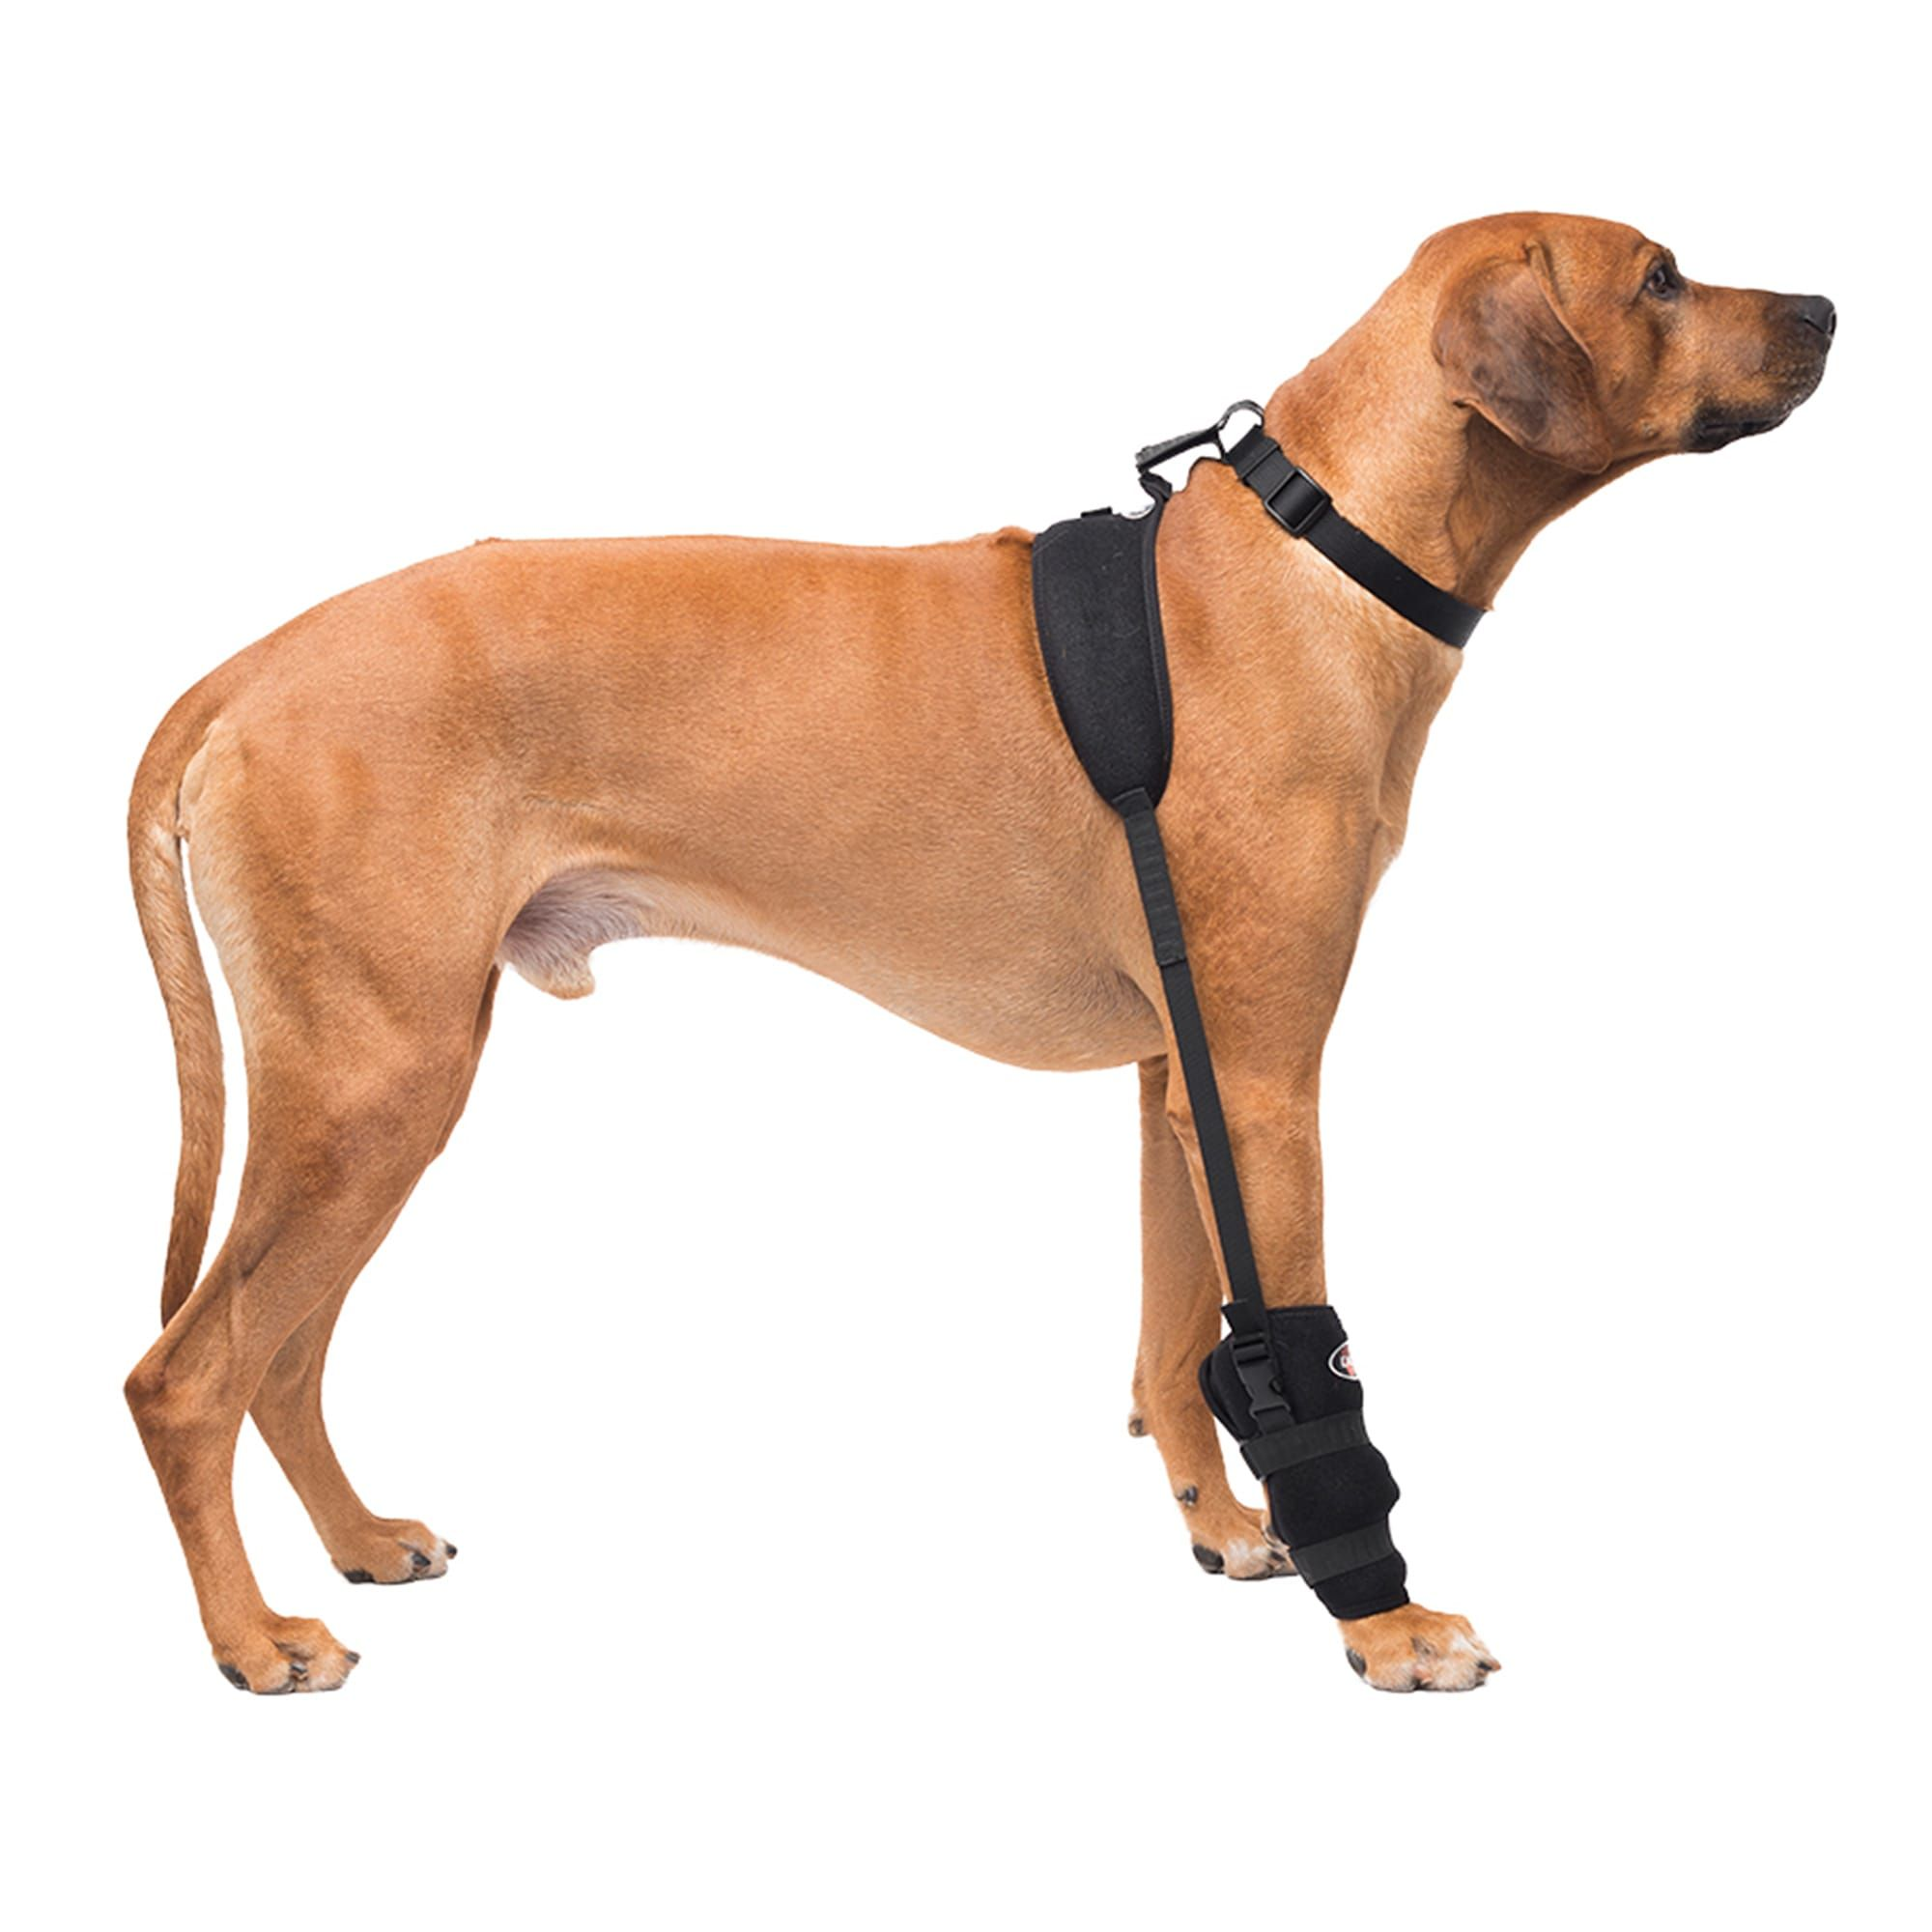 Caldera Hot & Cold Therapy Wrap with Gel for Dog Carpals